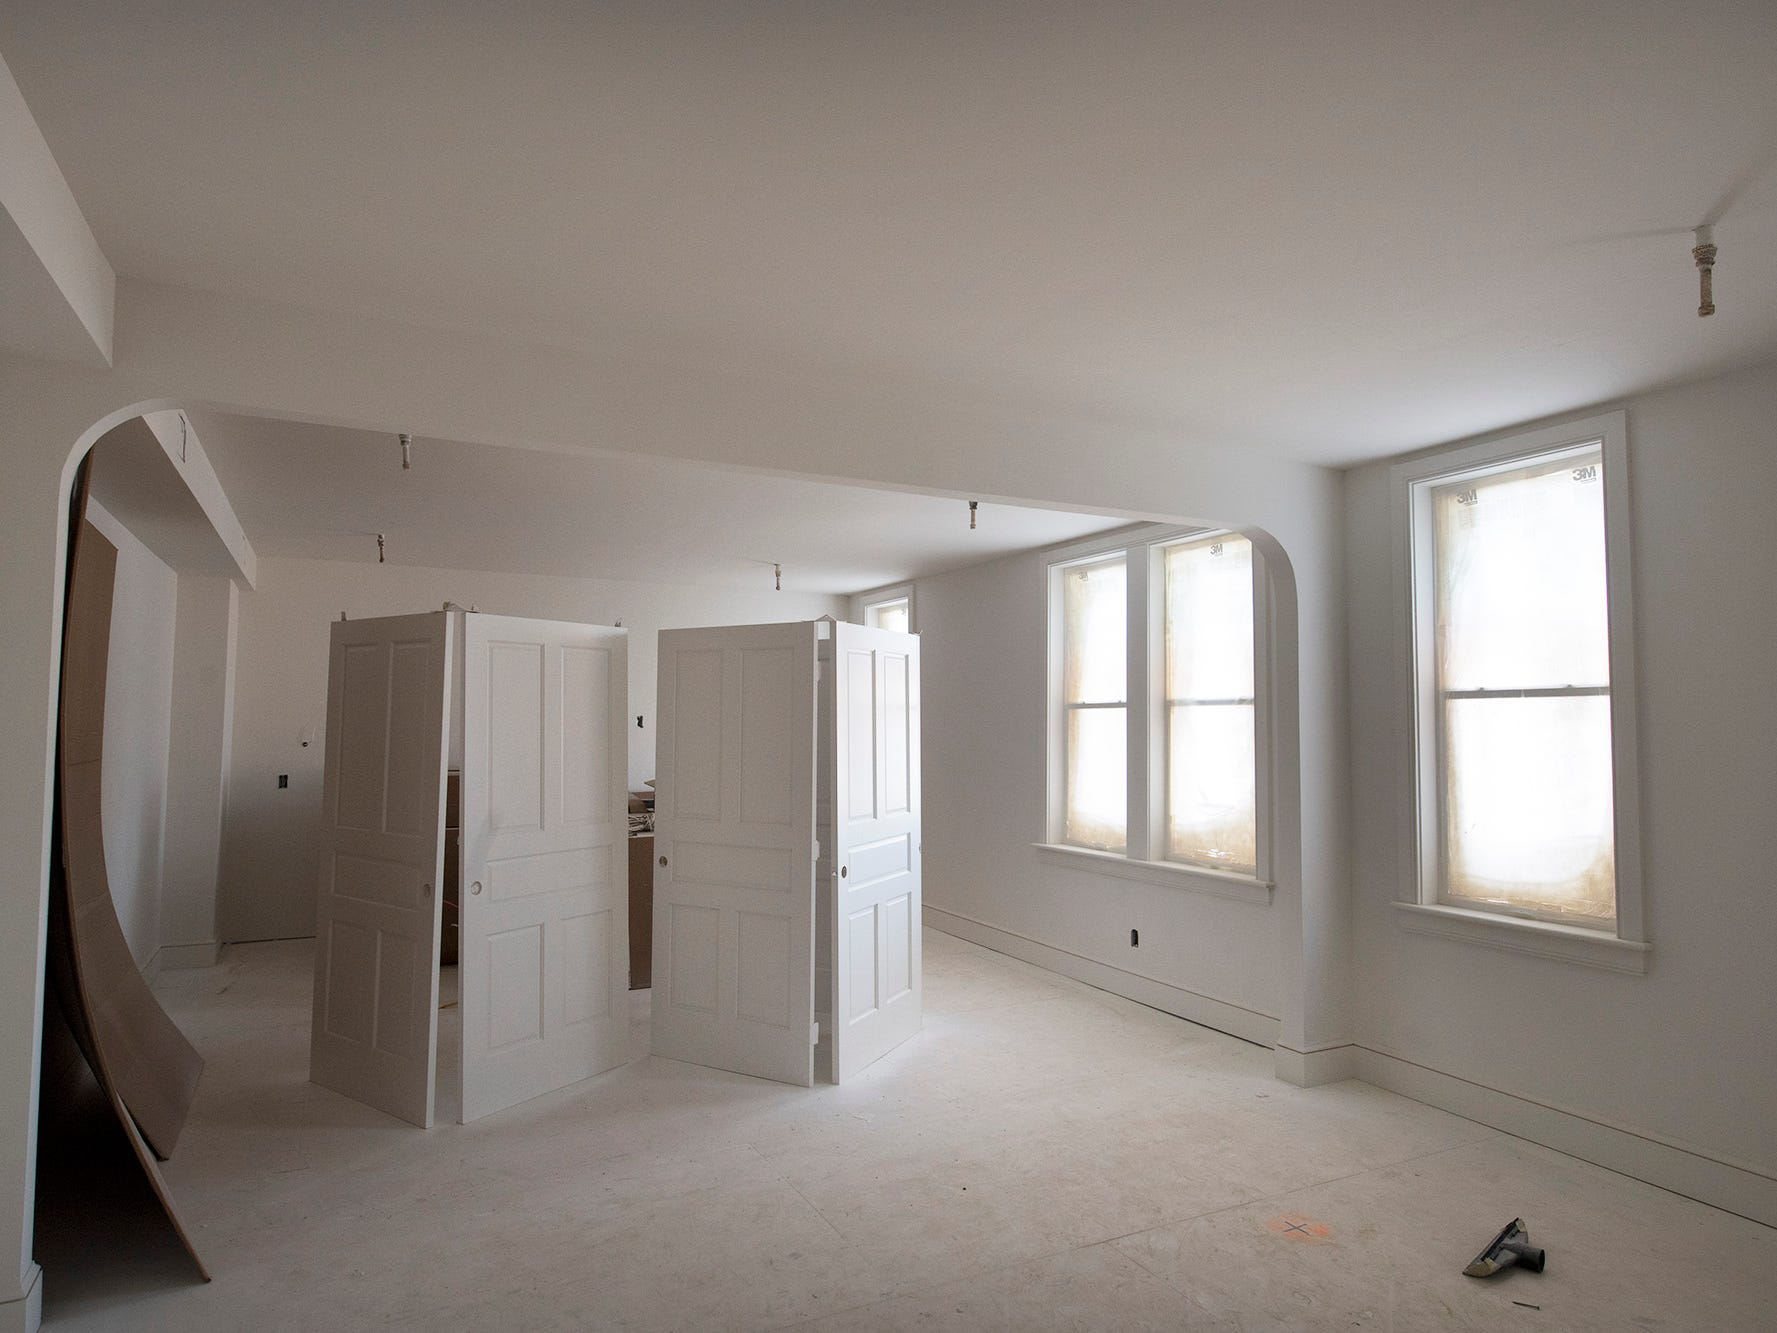 An apartment nears completion at the Doll Building at 337 W. Market Street in York.